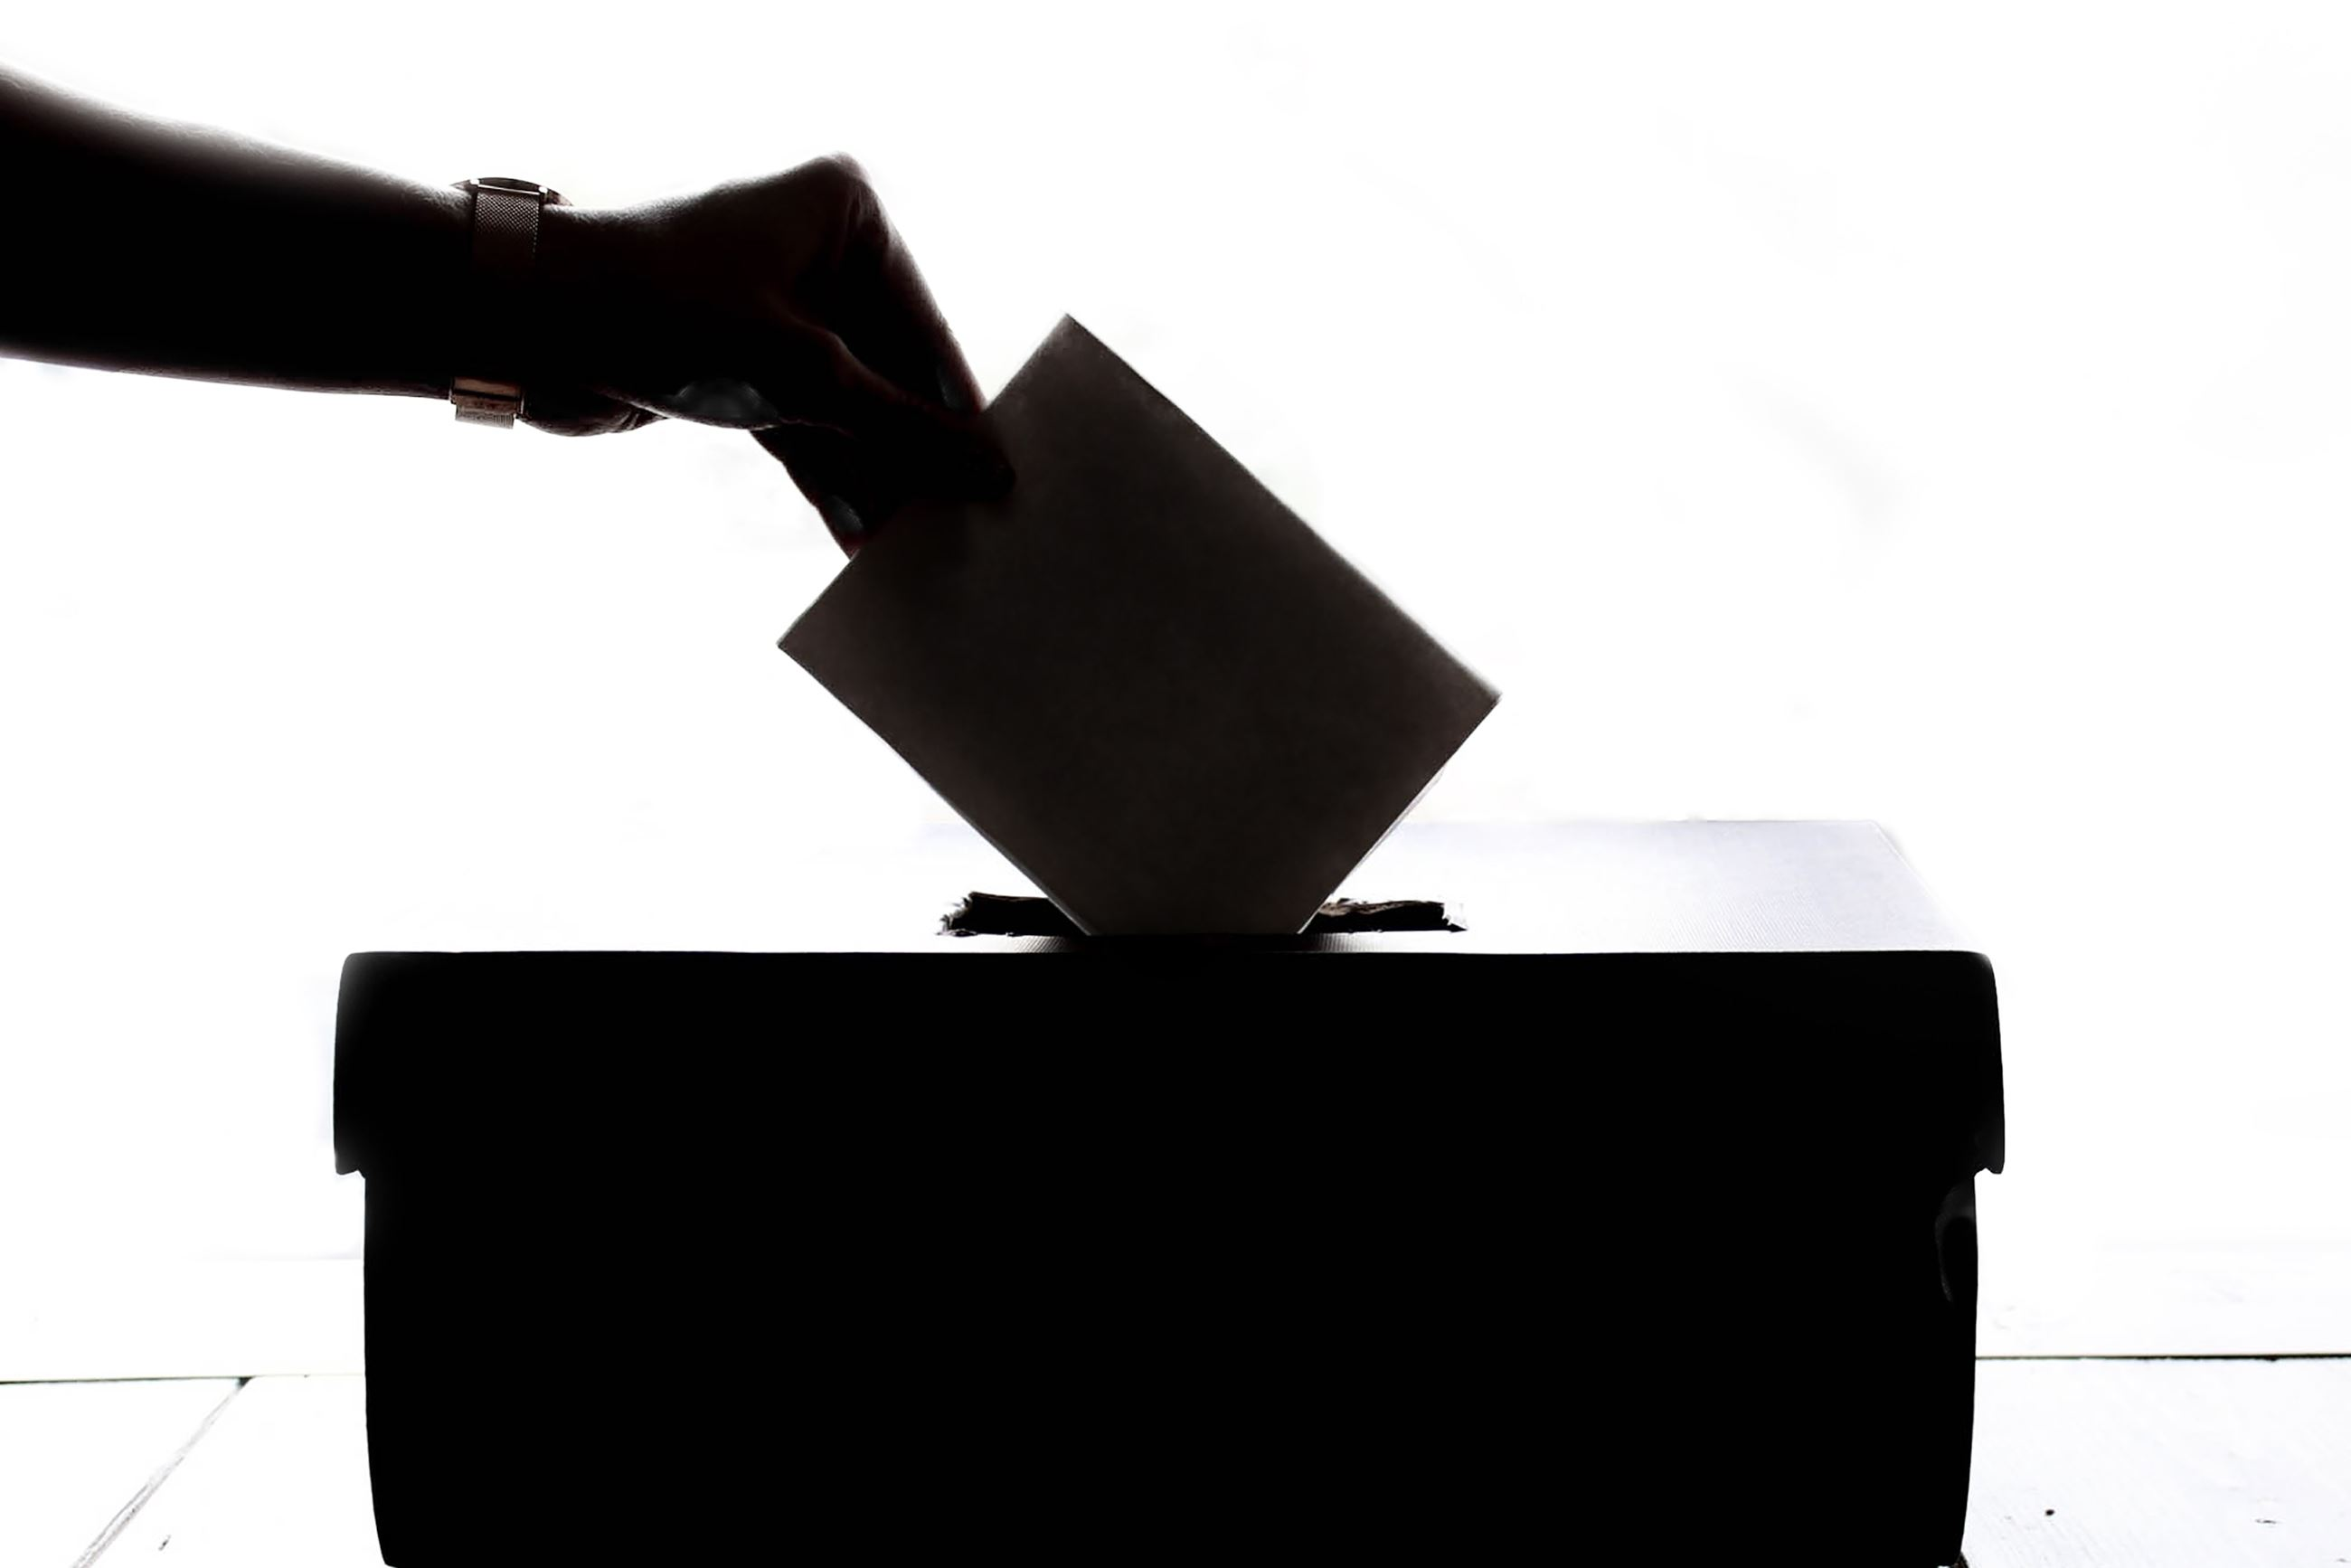 Ballot box with ballot being inserted